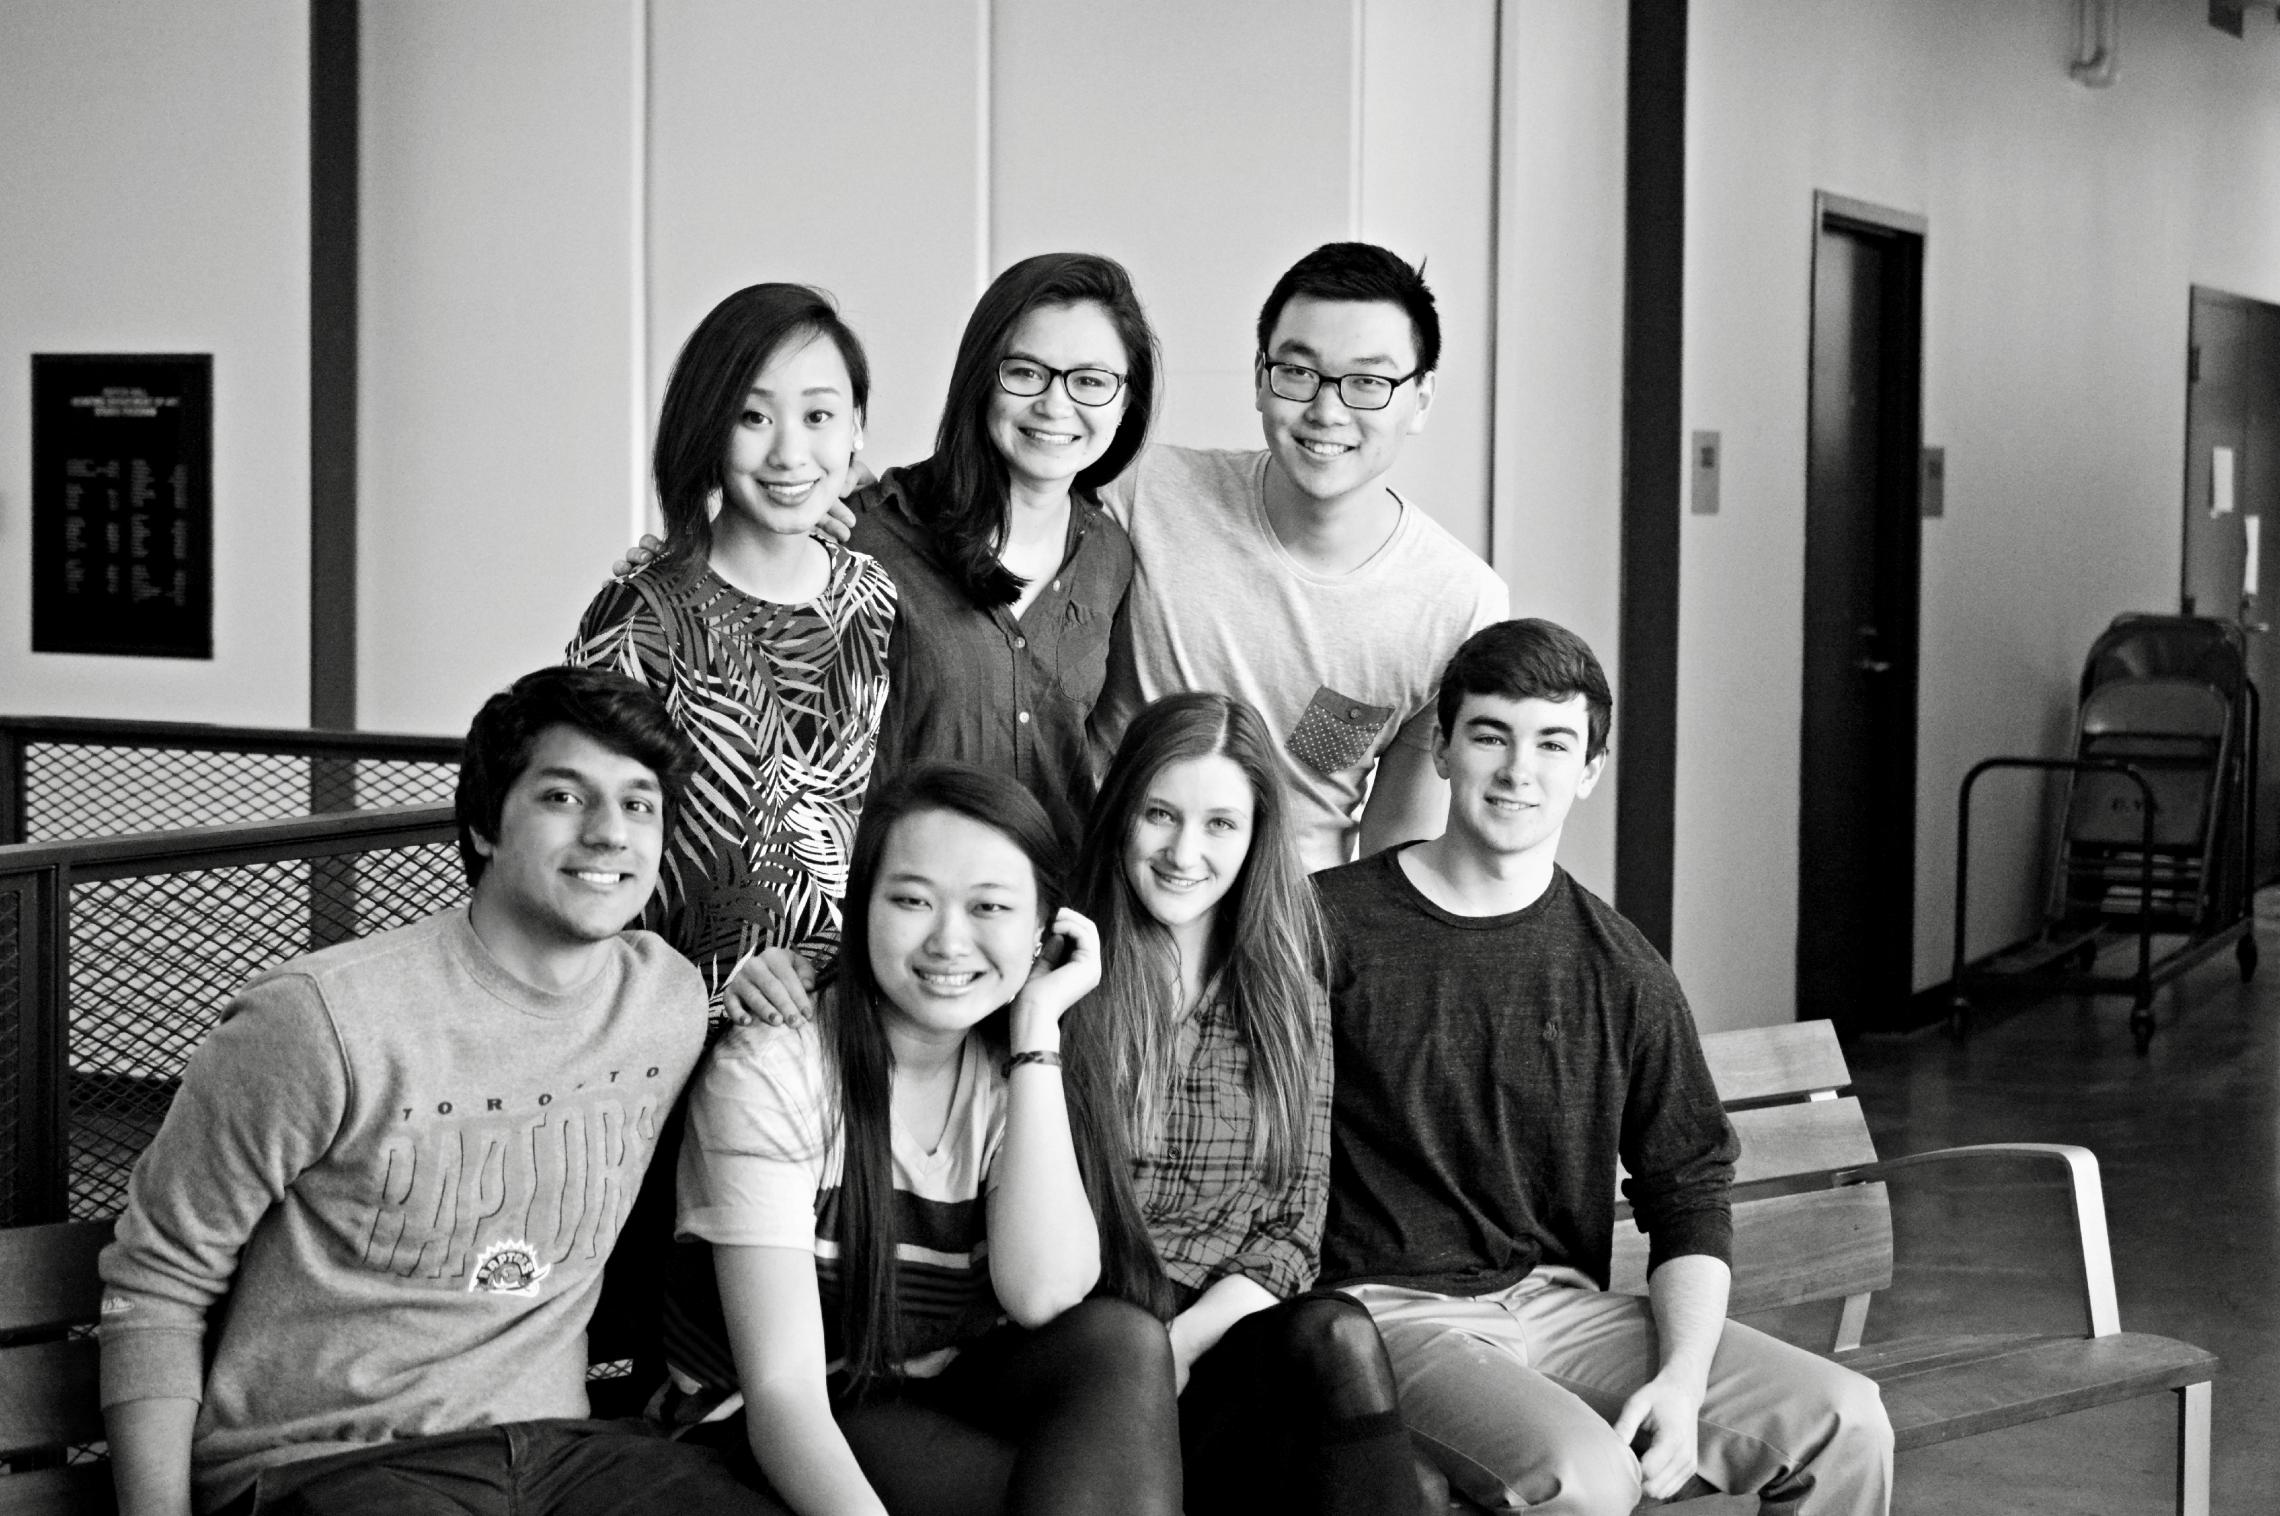 Arthur Wu and Kelsey Miller with the rest of their team. Top row, left to right: Katherine Jiang, Tania Ermak, Wu. Bottom row, left to right: Karan Baboota, Ariel Kao, Miller, Cameron Upshaw.